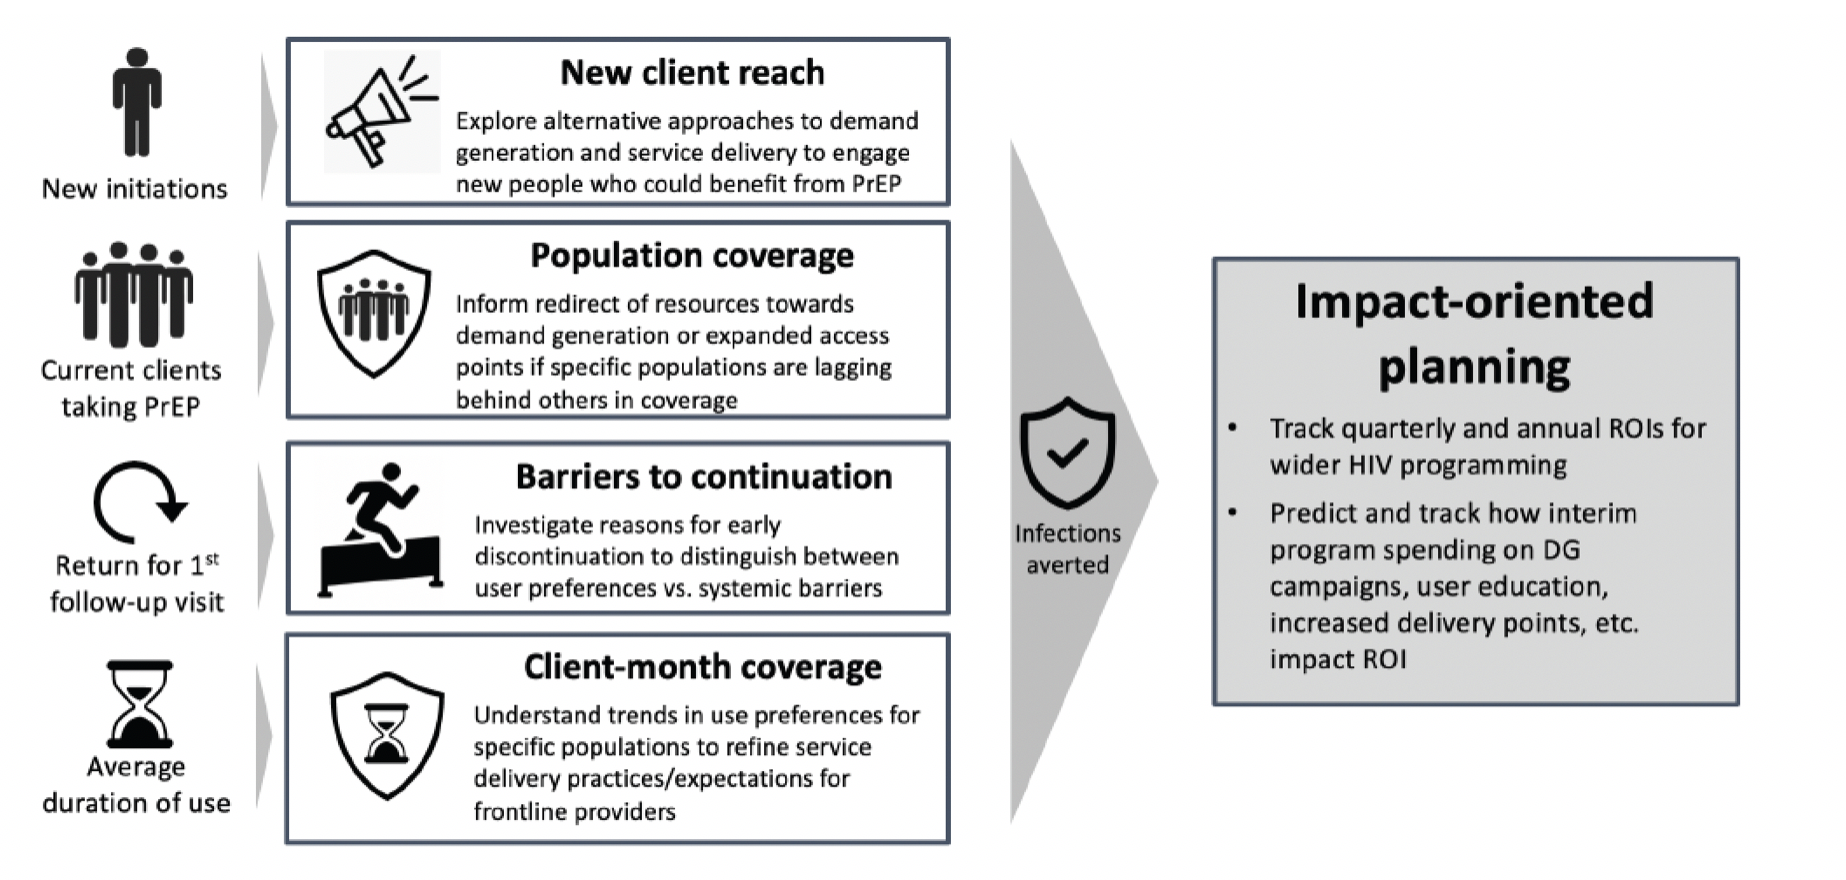 impact-oriented planning graphic